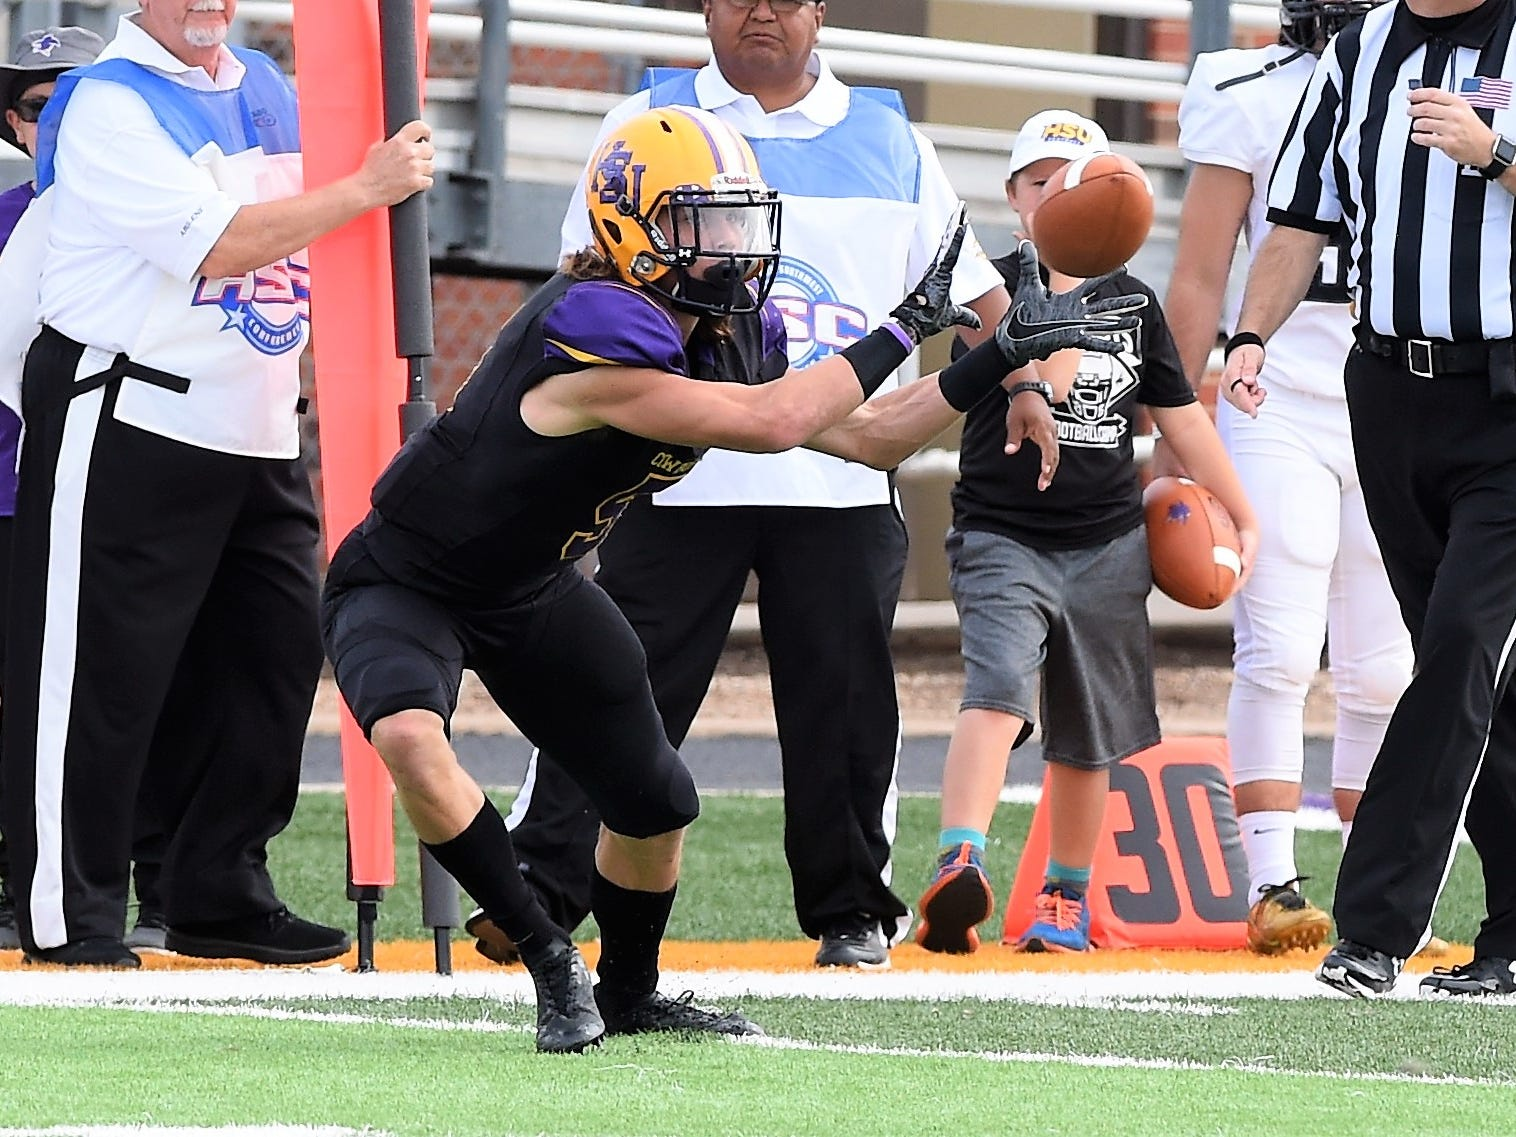 Hardin-Simmons receiver Reese Childress (5) looks in a pass against Texas Lutheran at Shelton Stadium on Saturday, Oct. 20, 2018.